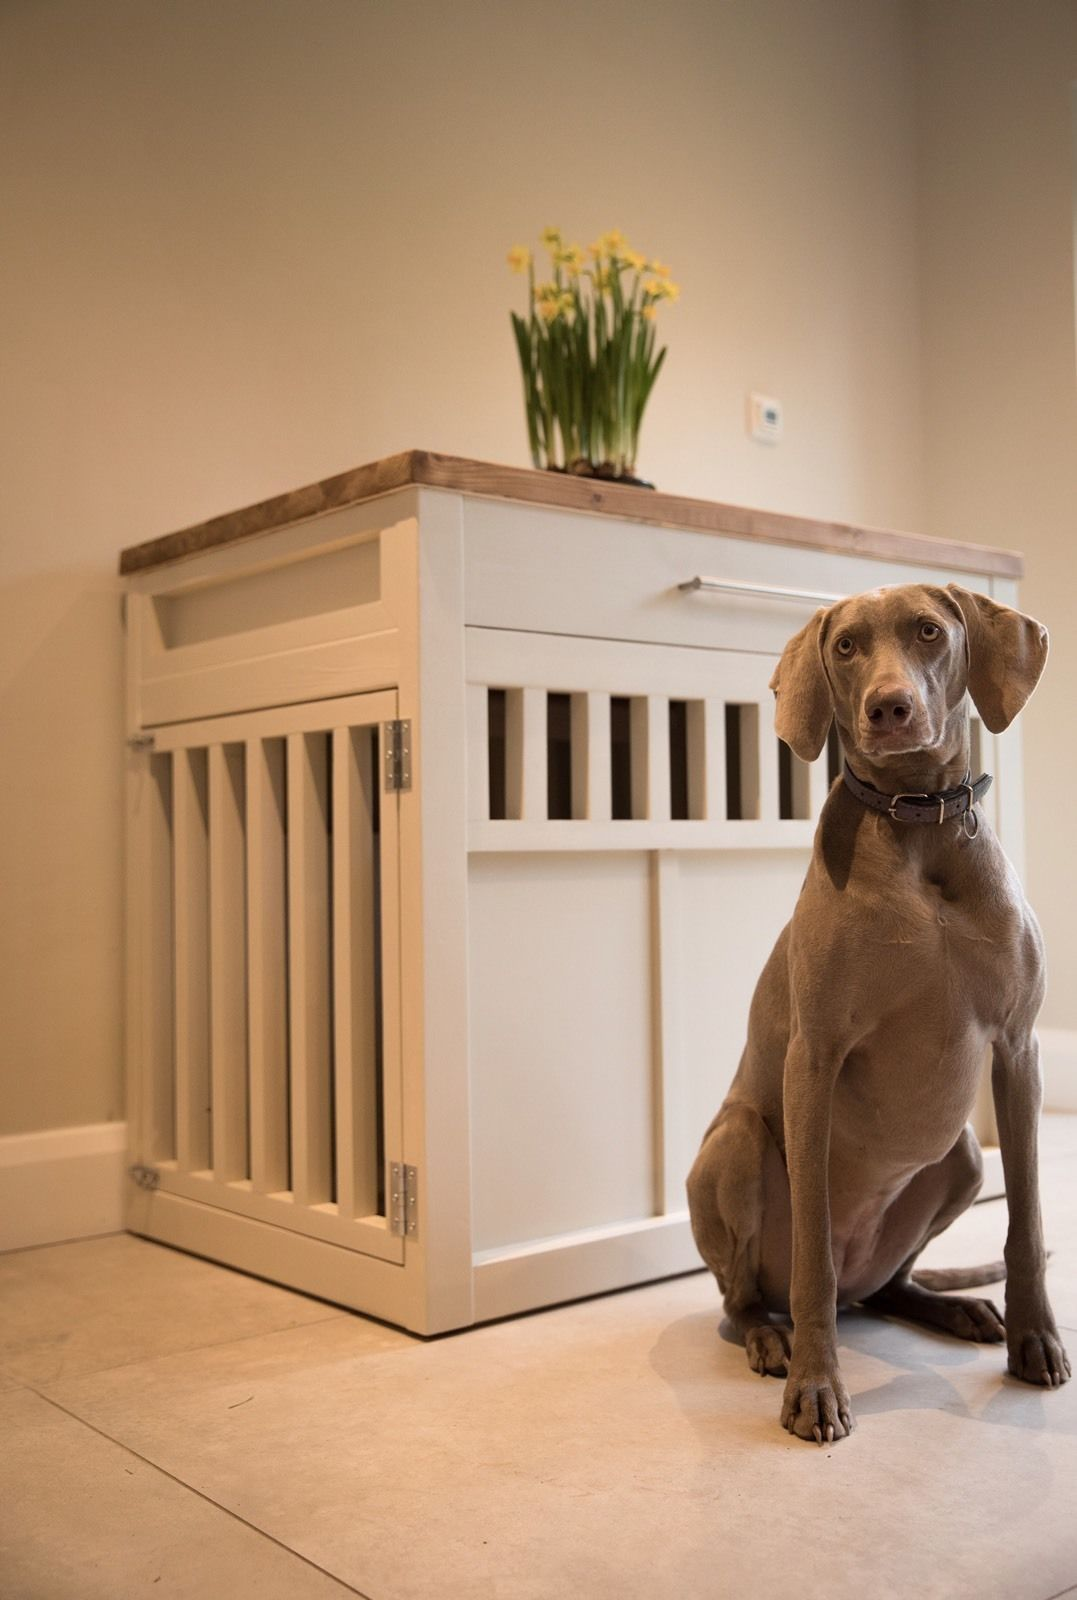 Custom Wooden Dog Crates Wooden dog crate, Custom crates